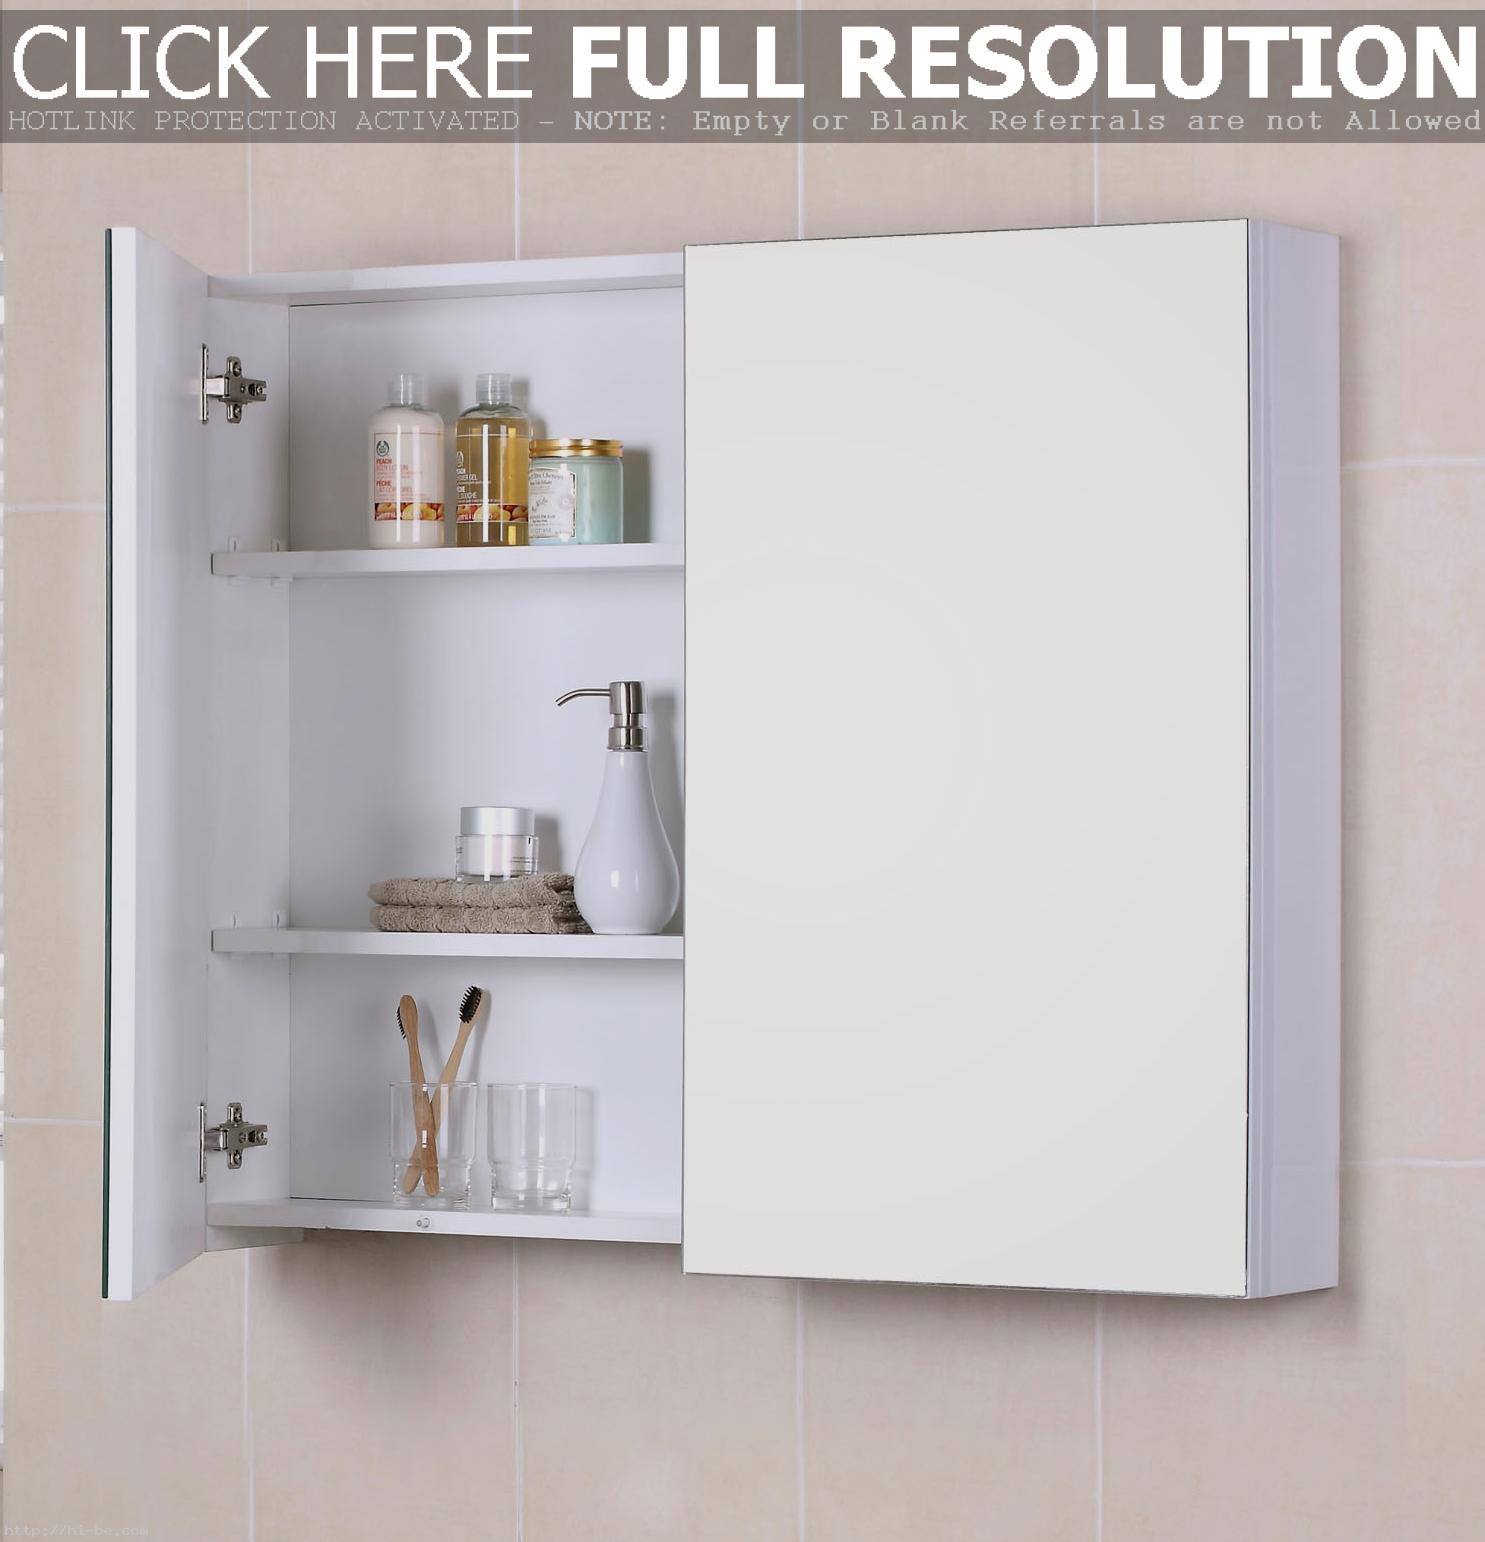 Fascinating-Bathroom-Cabinets-Design-With-Lights-Wall-Medicine-Mounted-Mirror-Furniture-With-3-Tier-Caddy-Shelf-In-Pink-Ceramic-Tiles-Decor-Idea-Kitchen-Ca